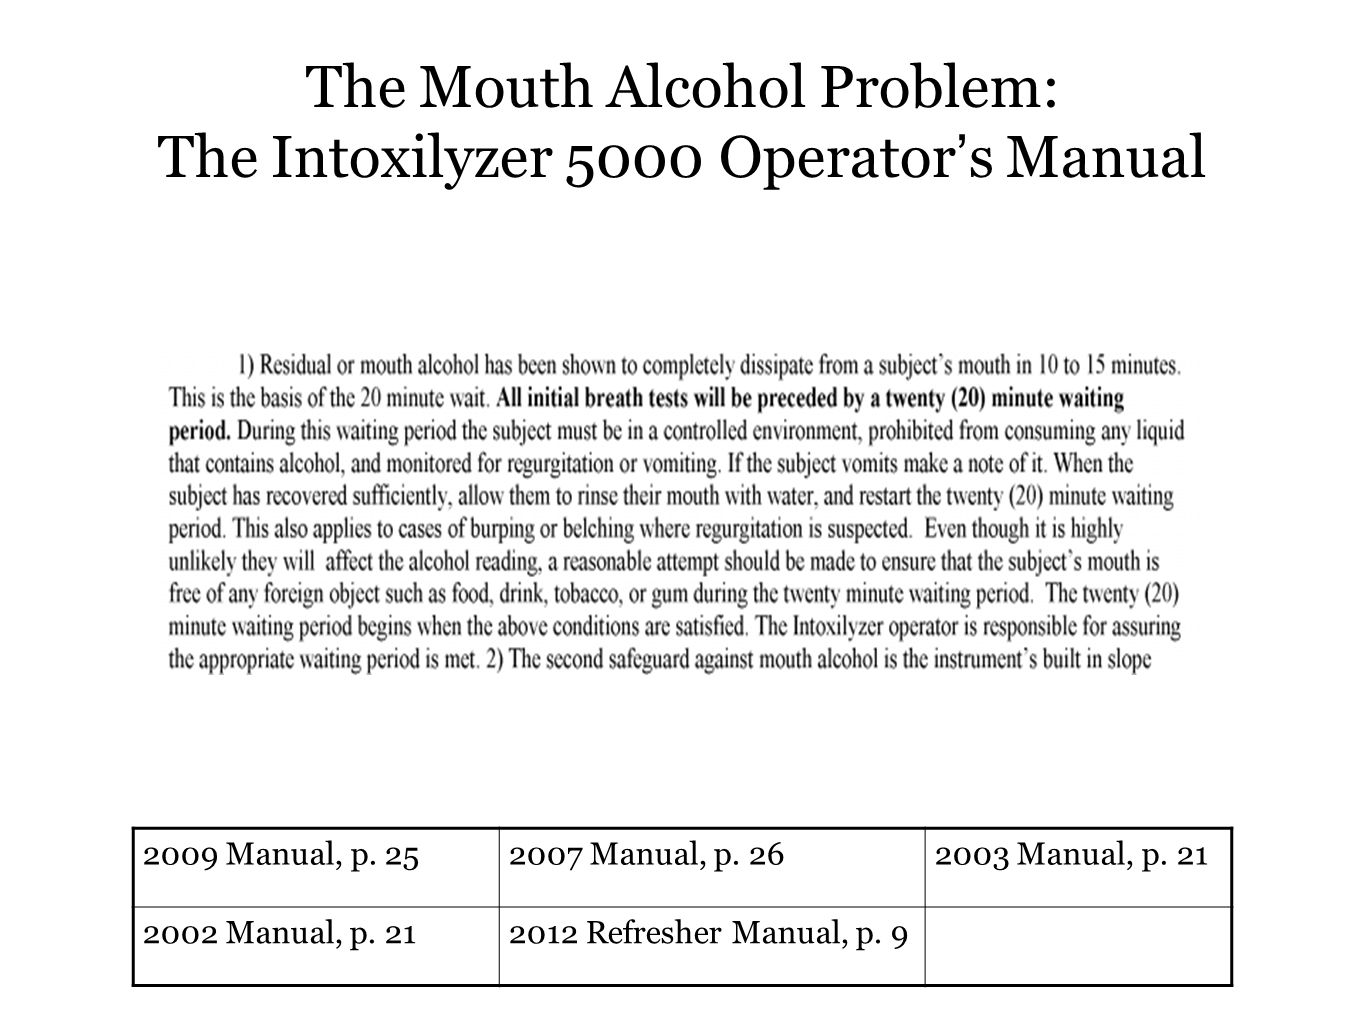 The Mouth Alcohol Problem: The Intoxilyzer 5000 Operator's Manual